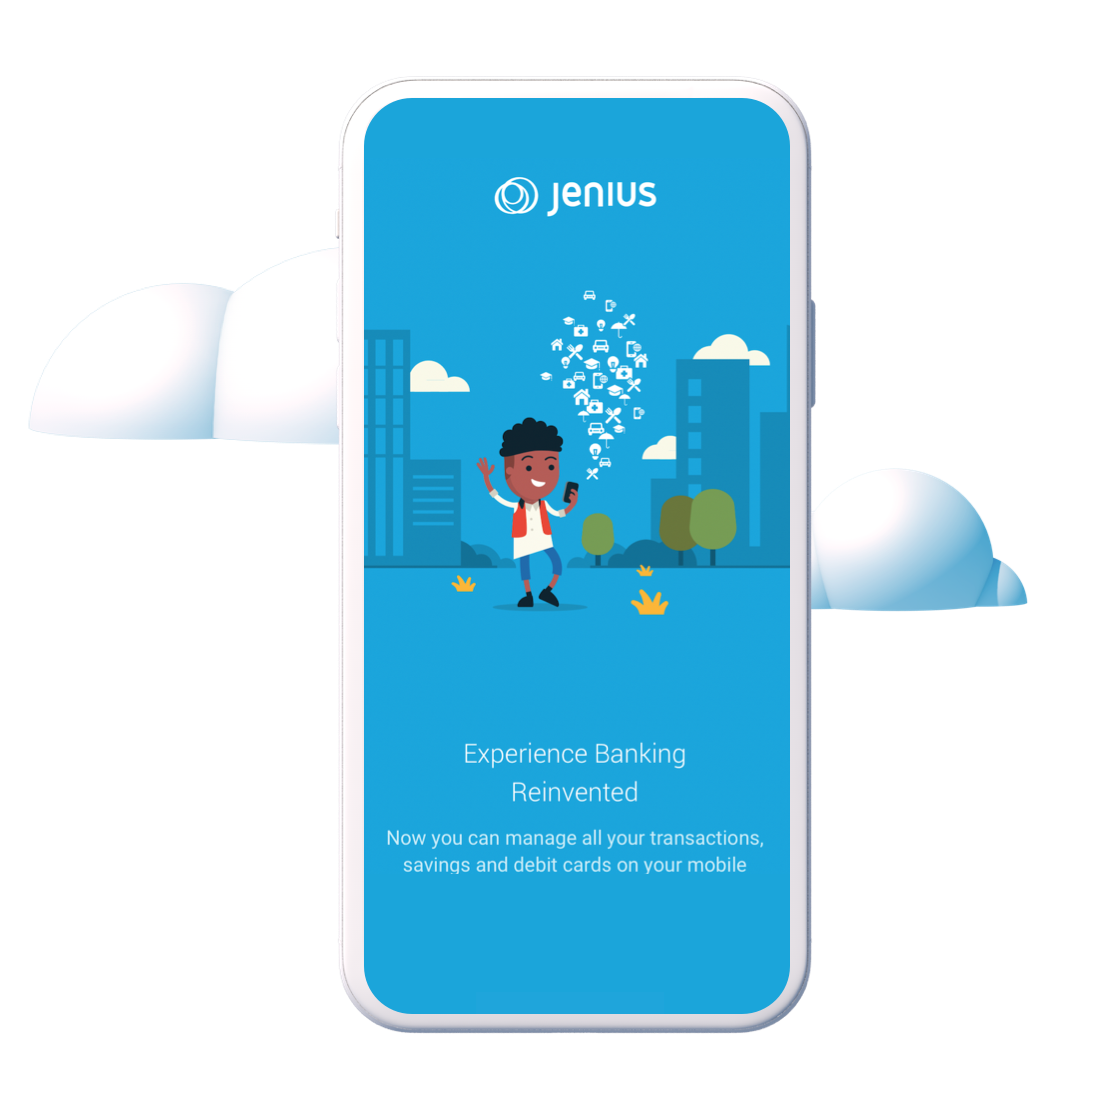 Jenius application